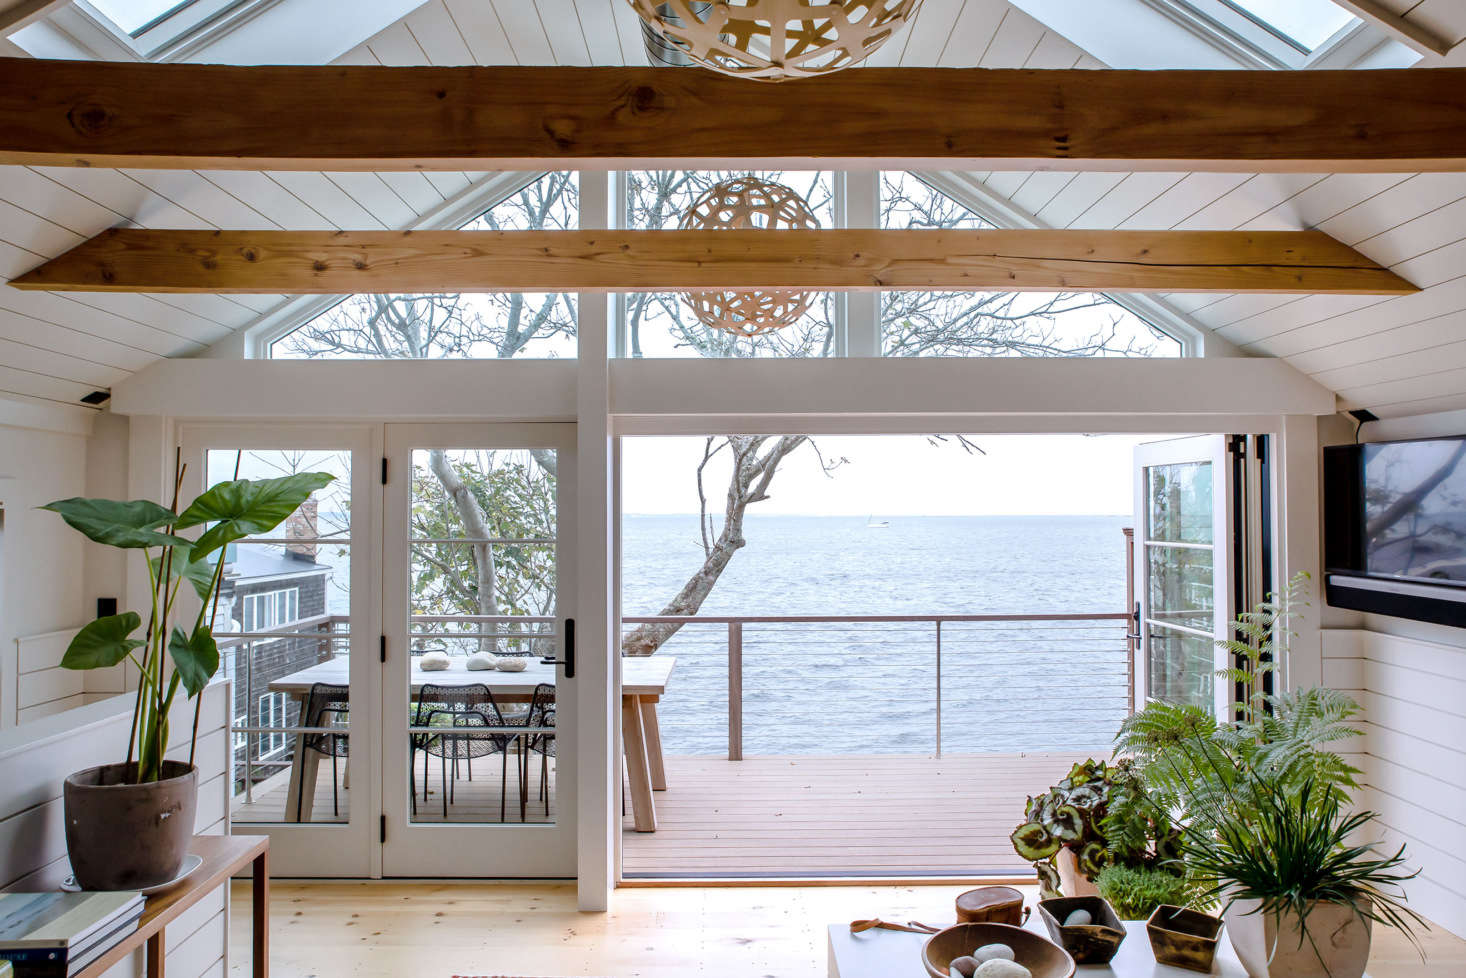 In the open, second-floor living/kitchen space, floor-to-ceiling windows and doors as well as overhead skylights flood the room withsea breezes and sunlight.